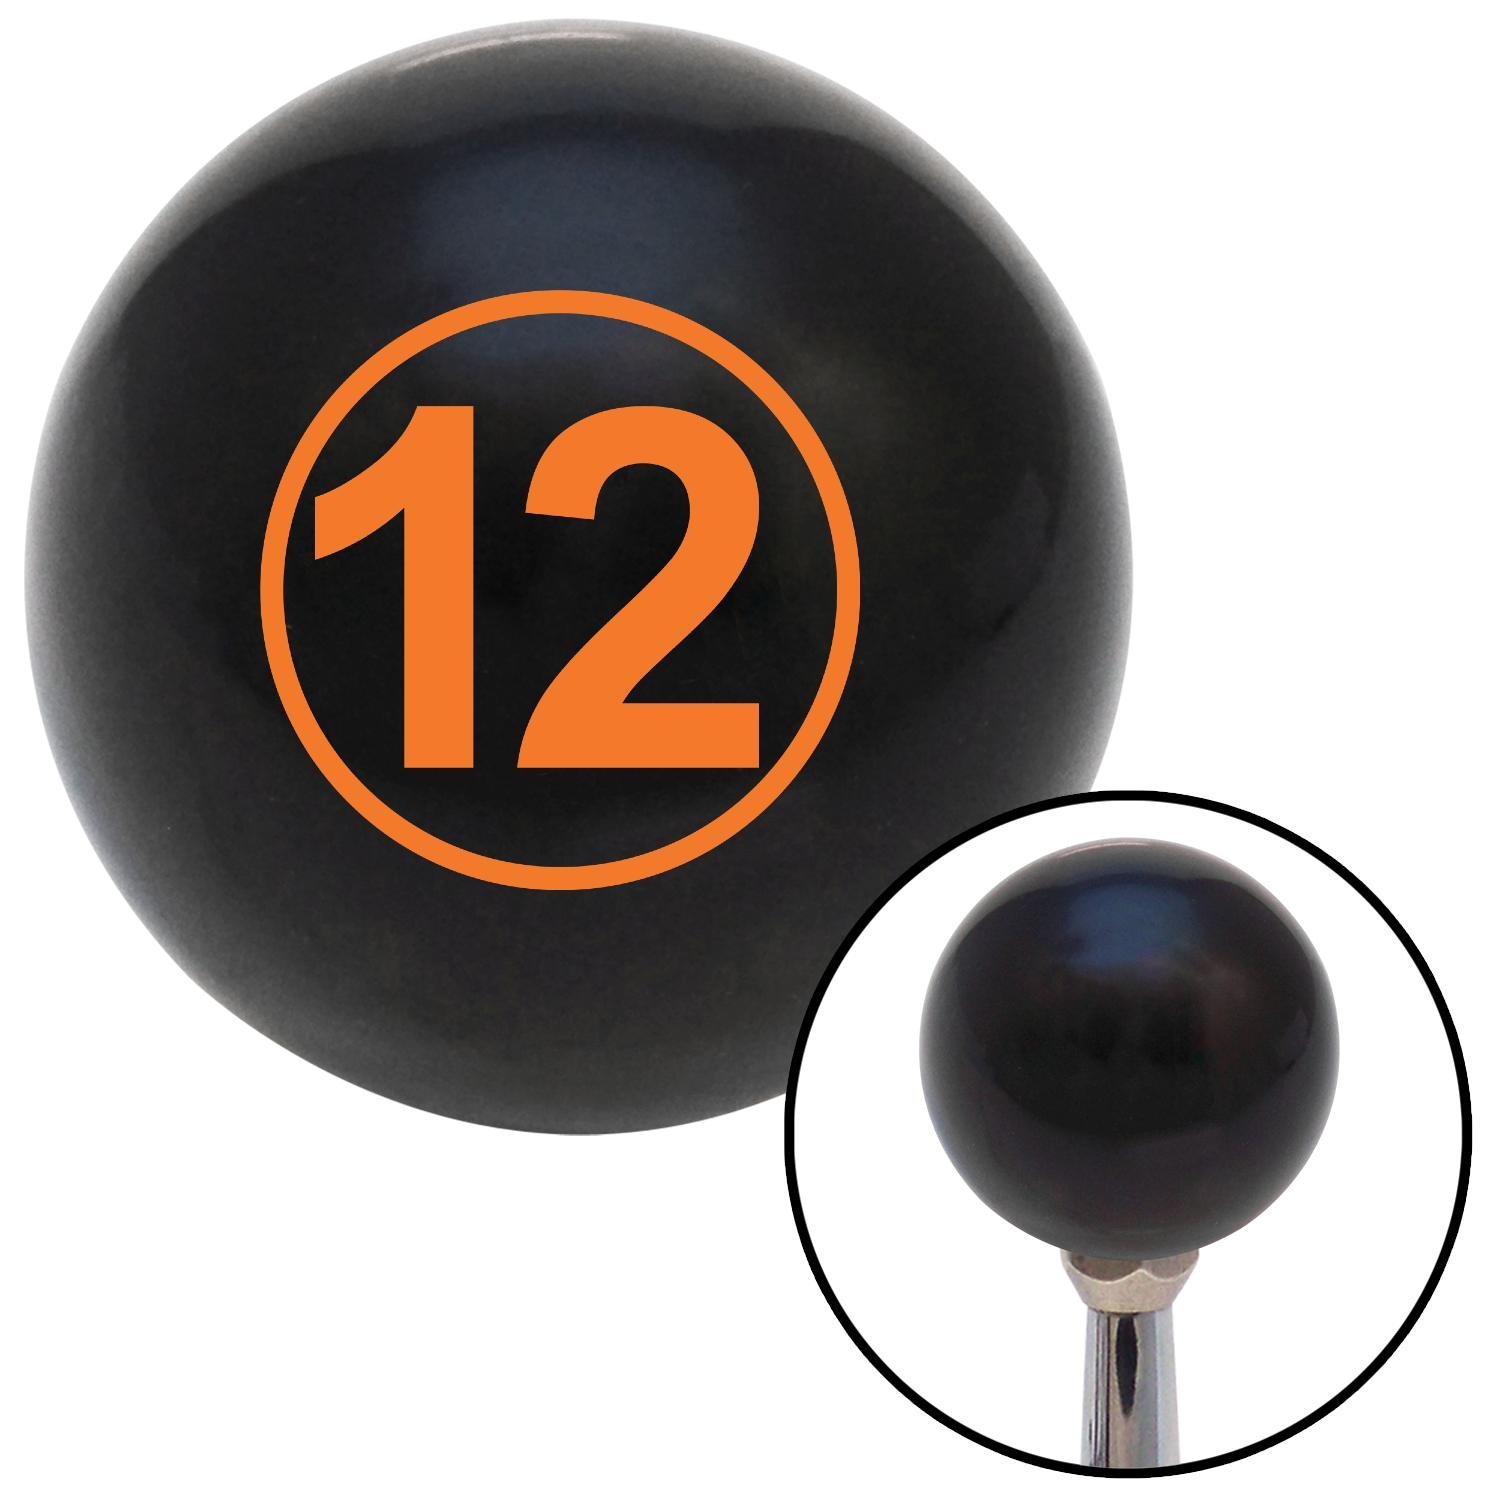 American Shifter 103840 Black Shift Knob with M16 x 1.5 Insert Orange Ball #12